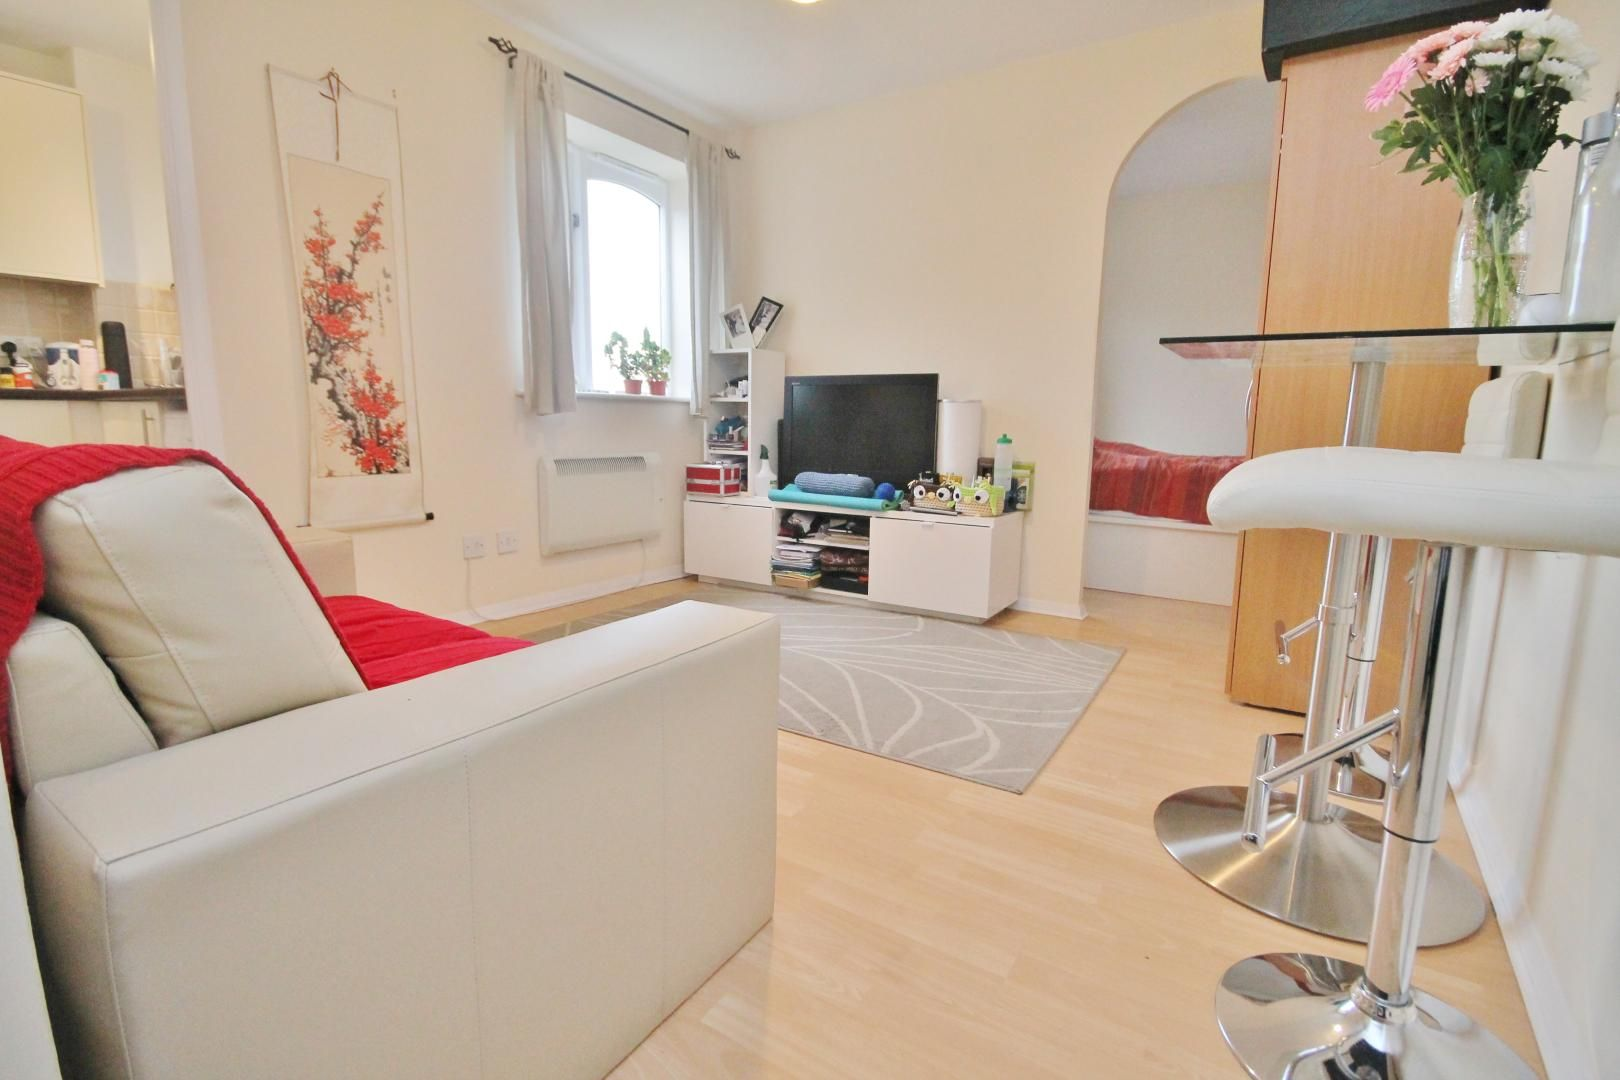 1 bed flat for sale in Telegraph Place - Property Image 1